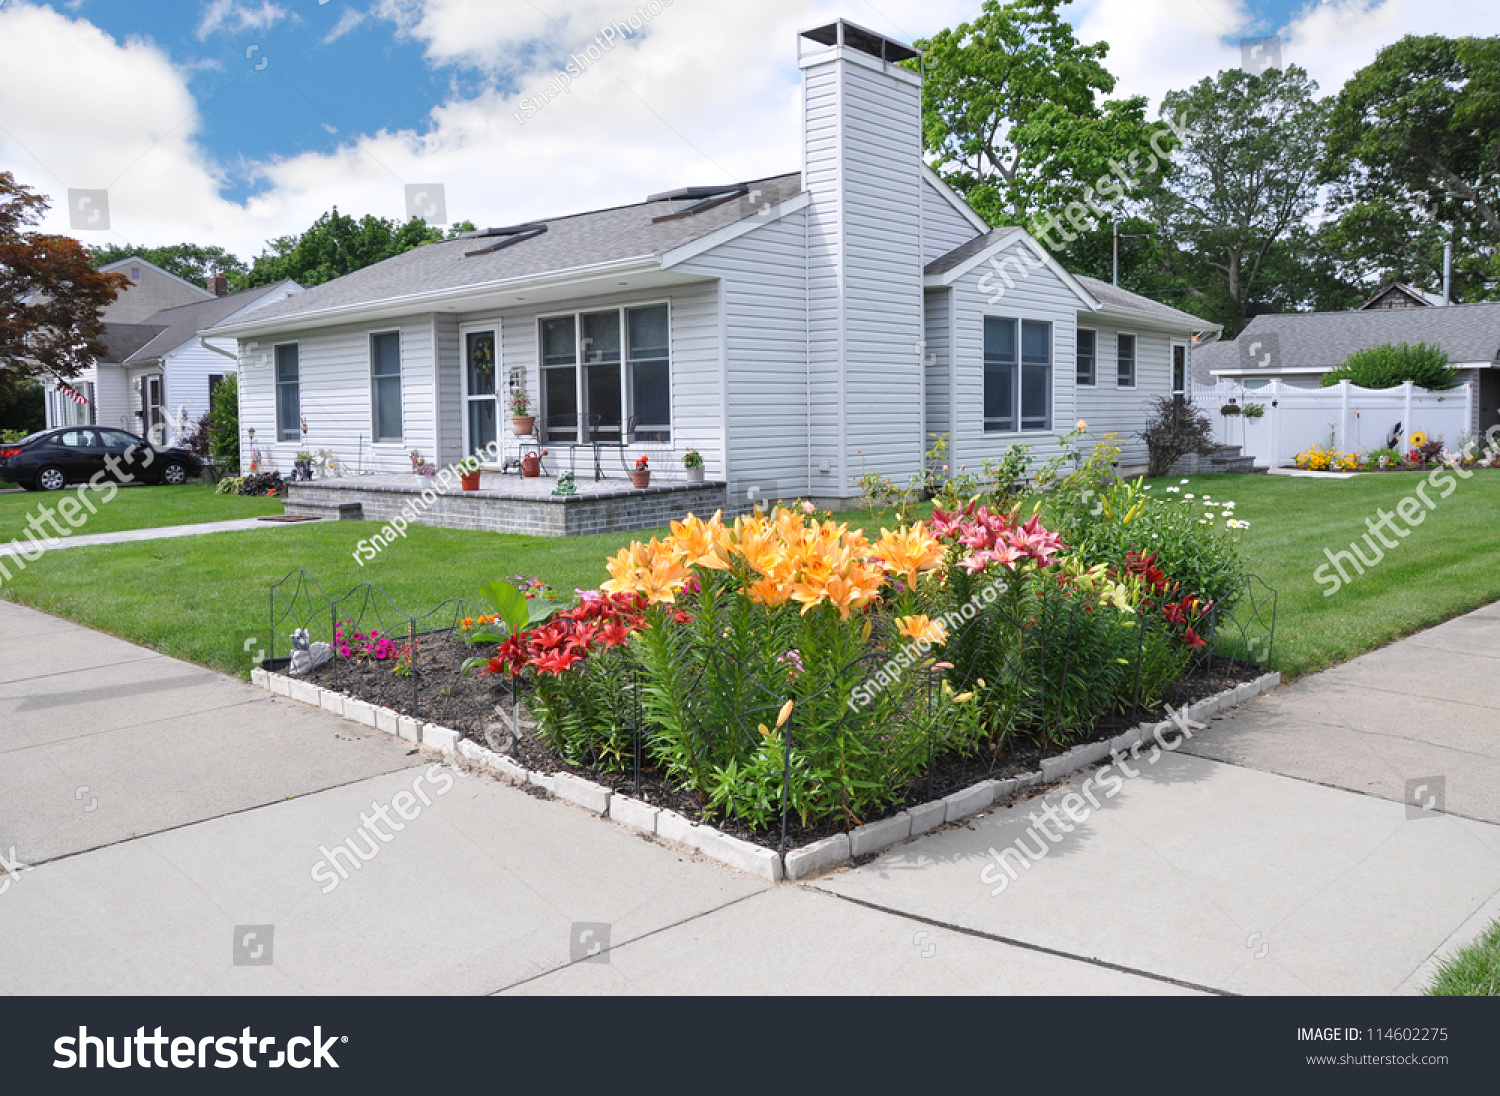 Residential flower gardens - Tiger Lily Flower Garden On Front Yard Property Of Suburban Ranch Style Home In Residential Neighborhood